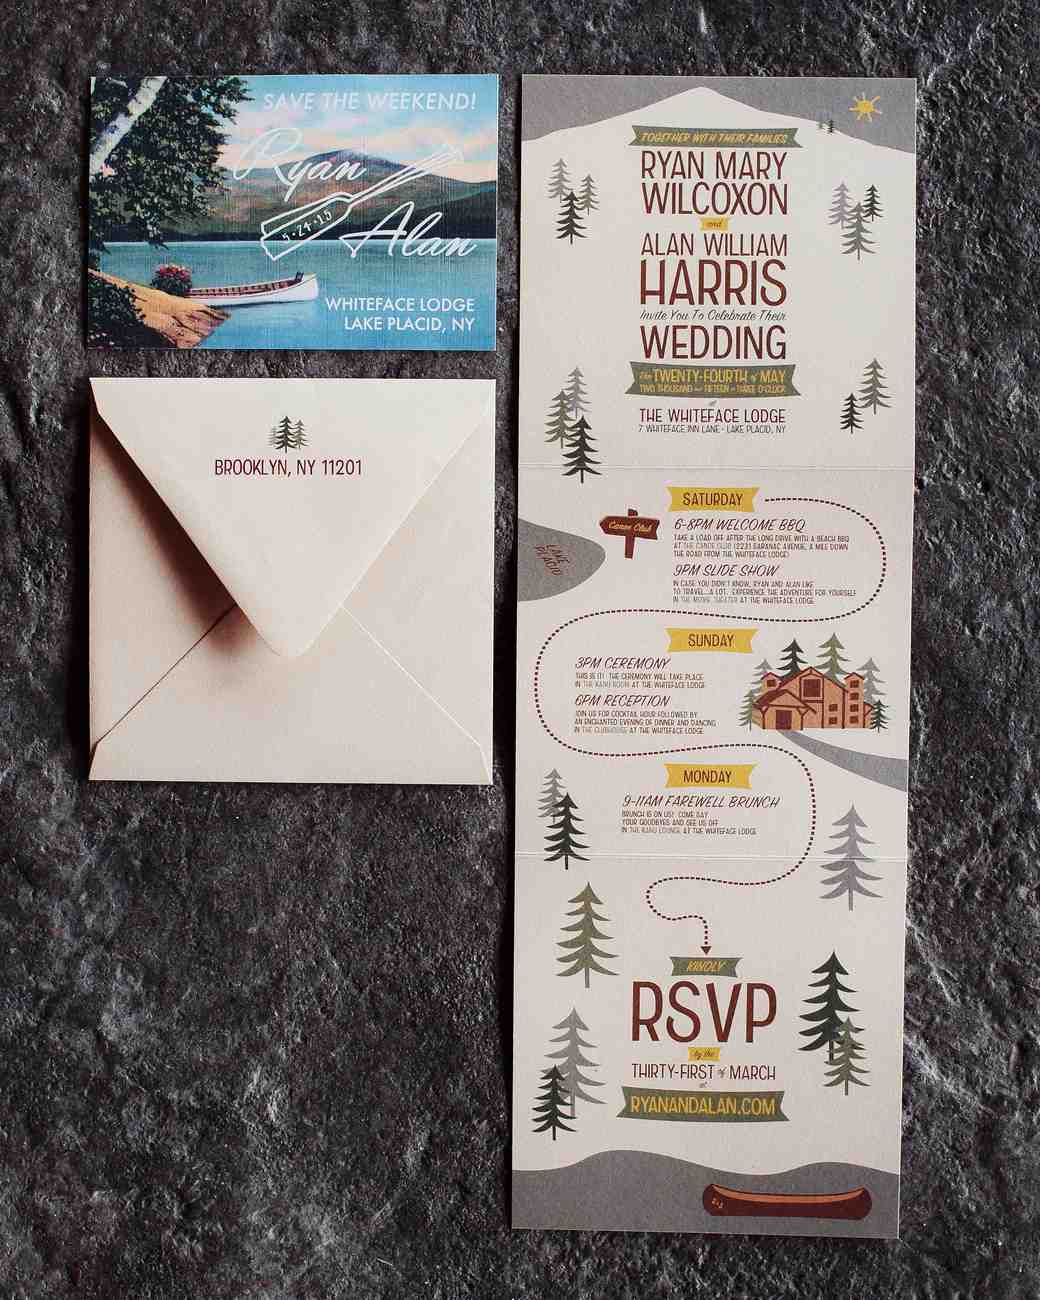 ryan-alan-wedding-stationery-26-0083-s112966-0516.jpg